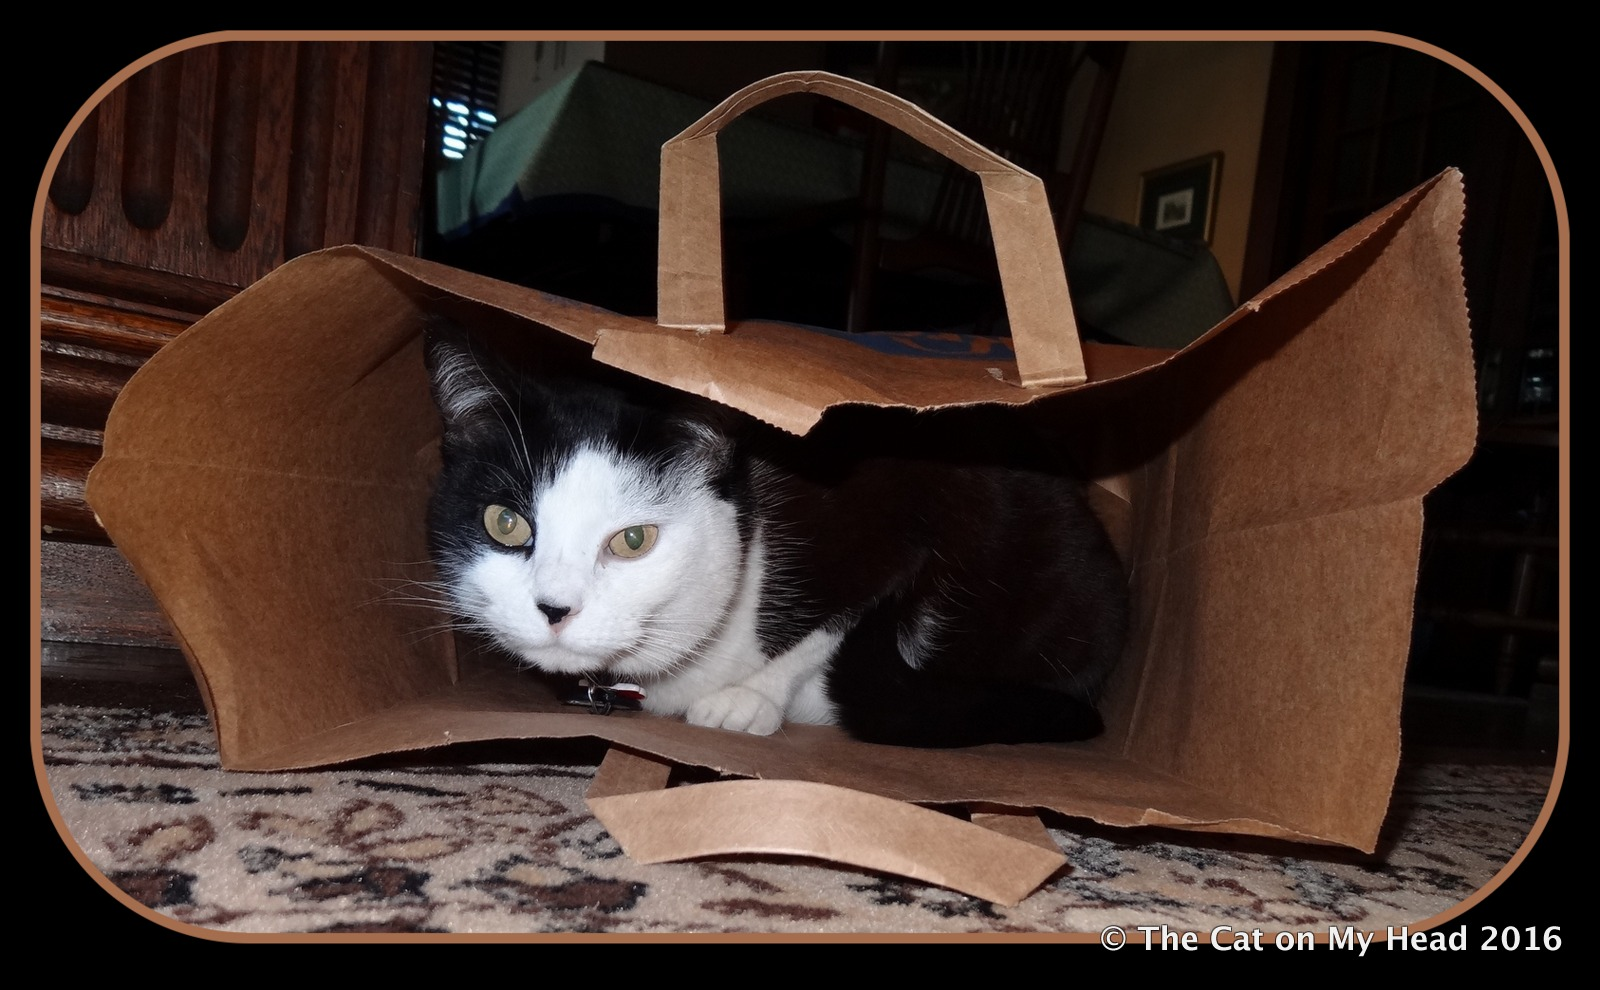 Misty May's in the bag.